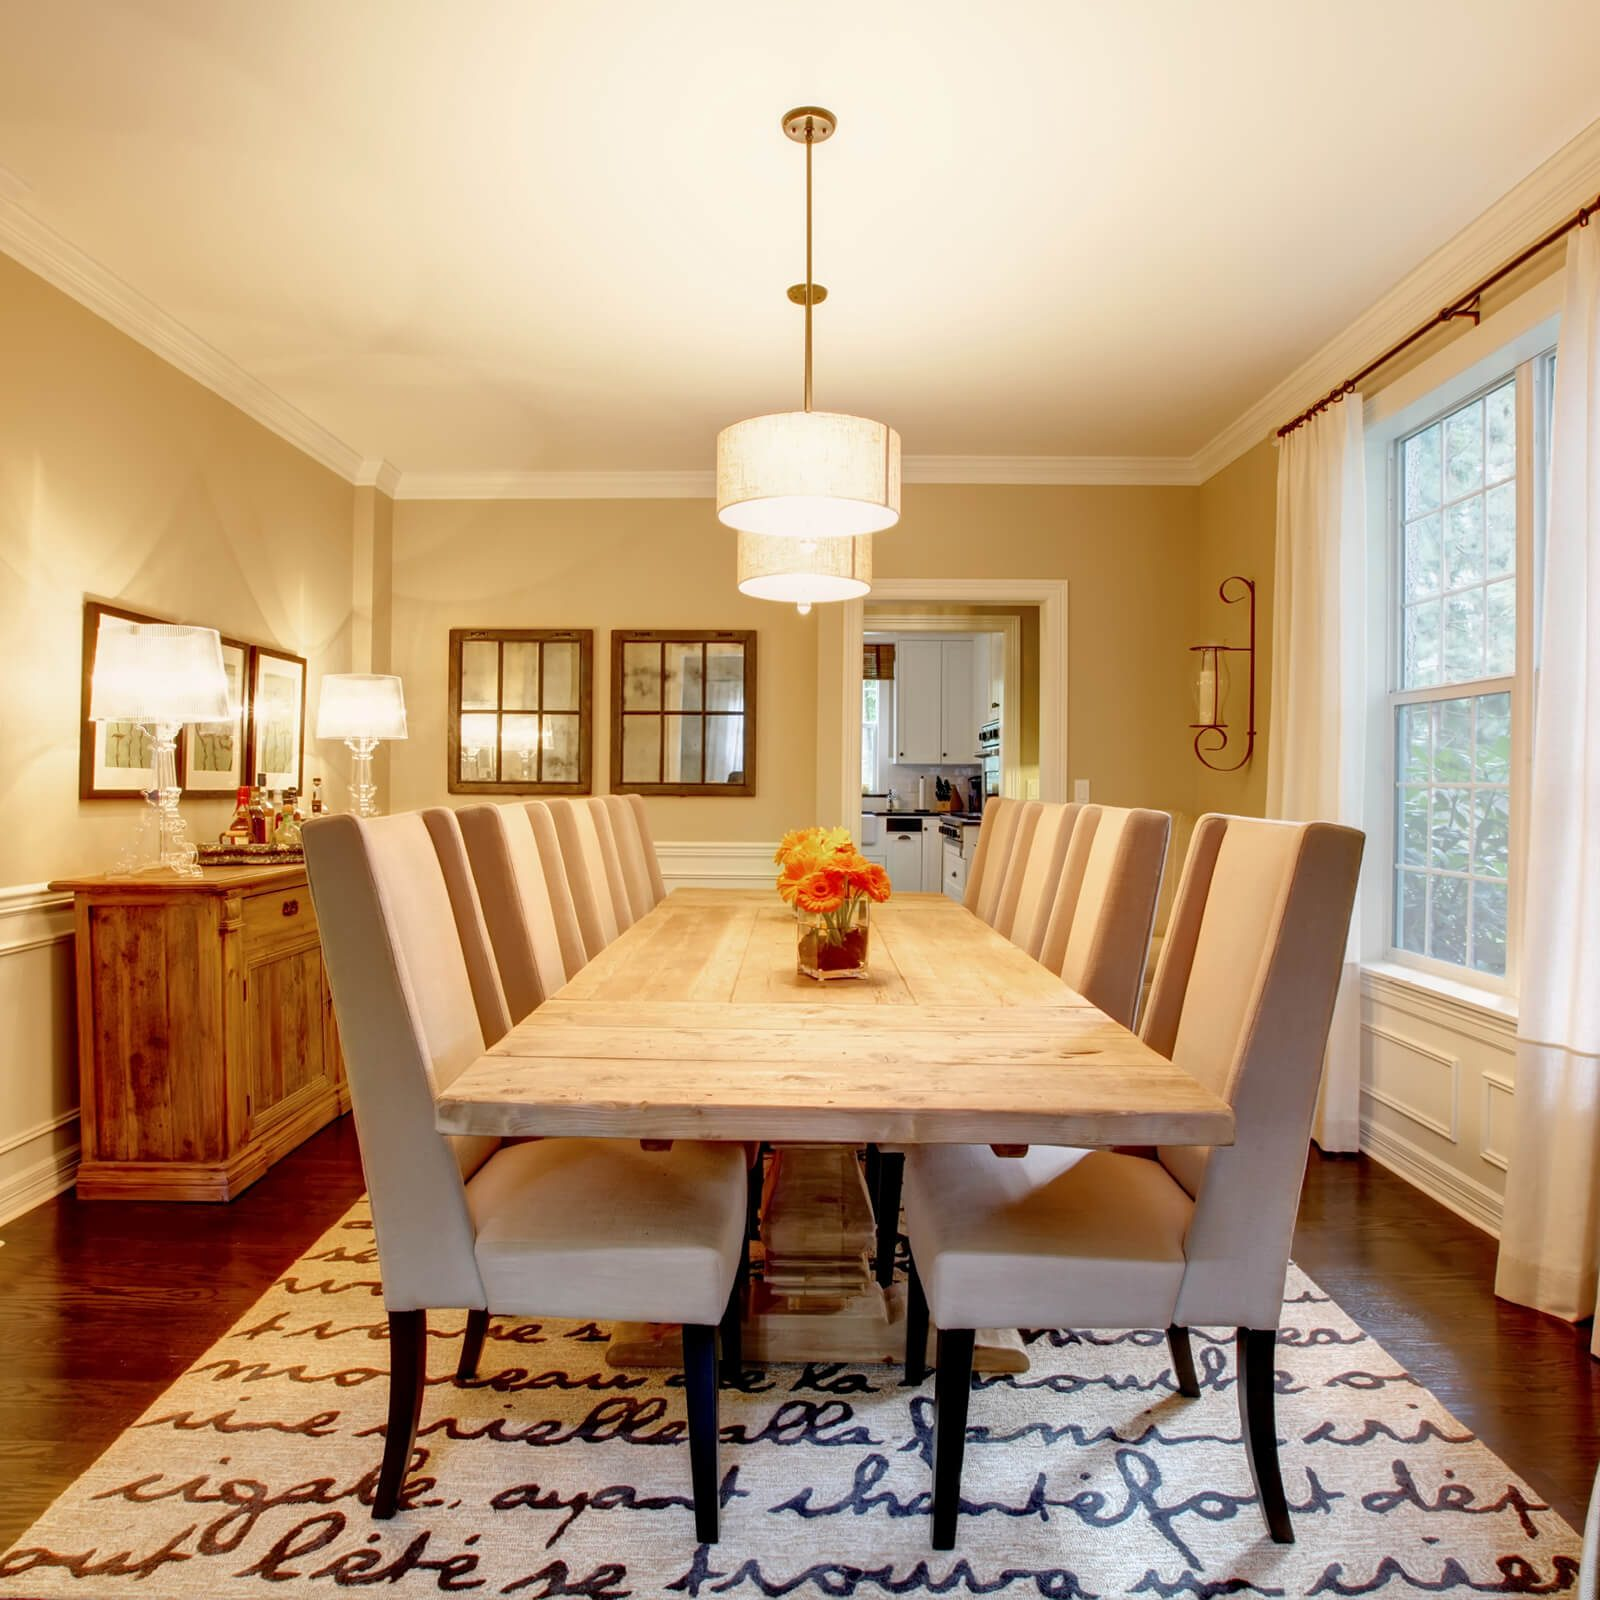 Dining table | The Carpet Stop